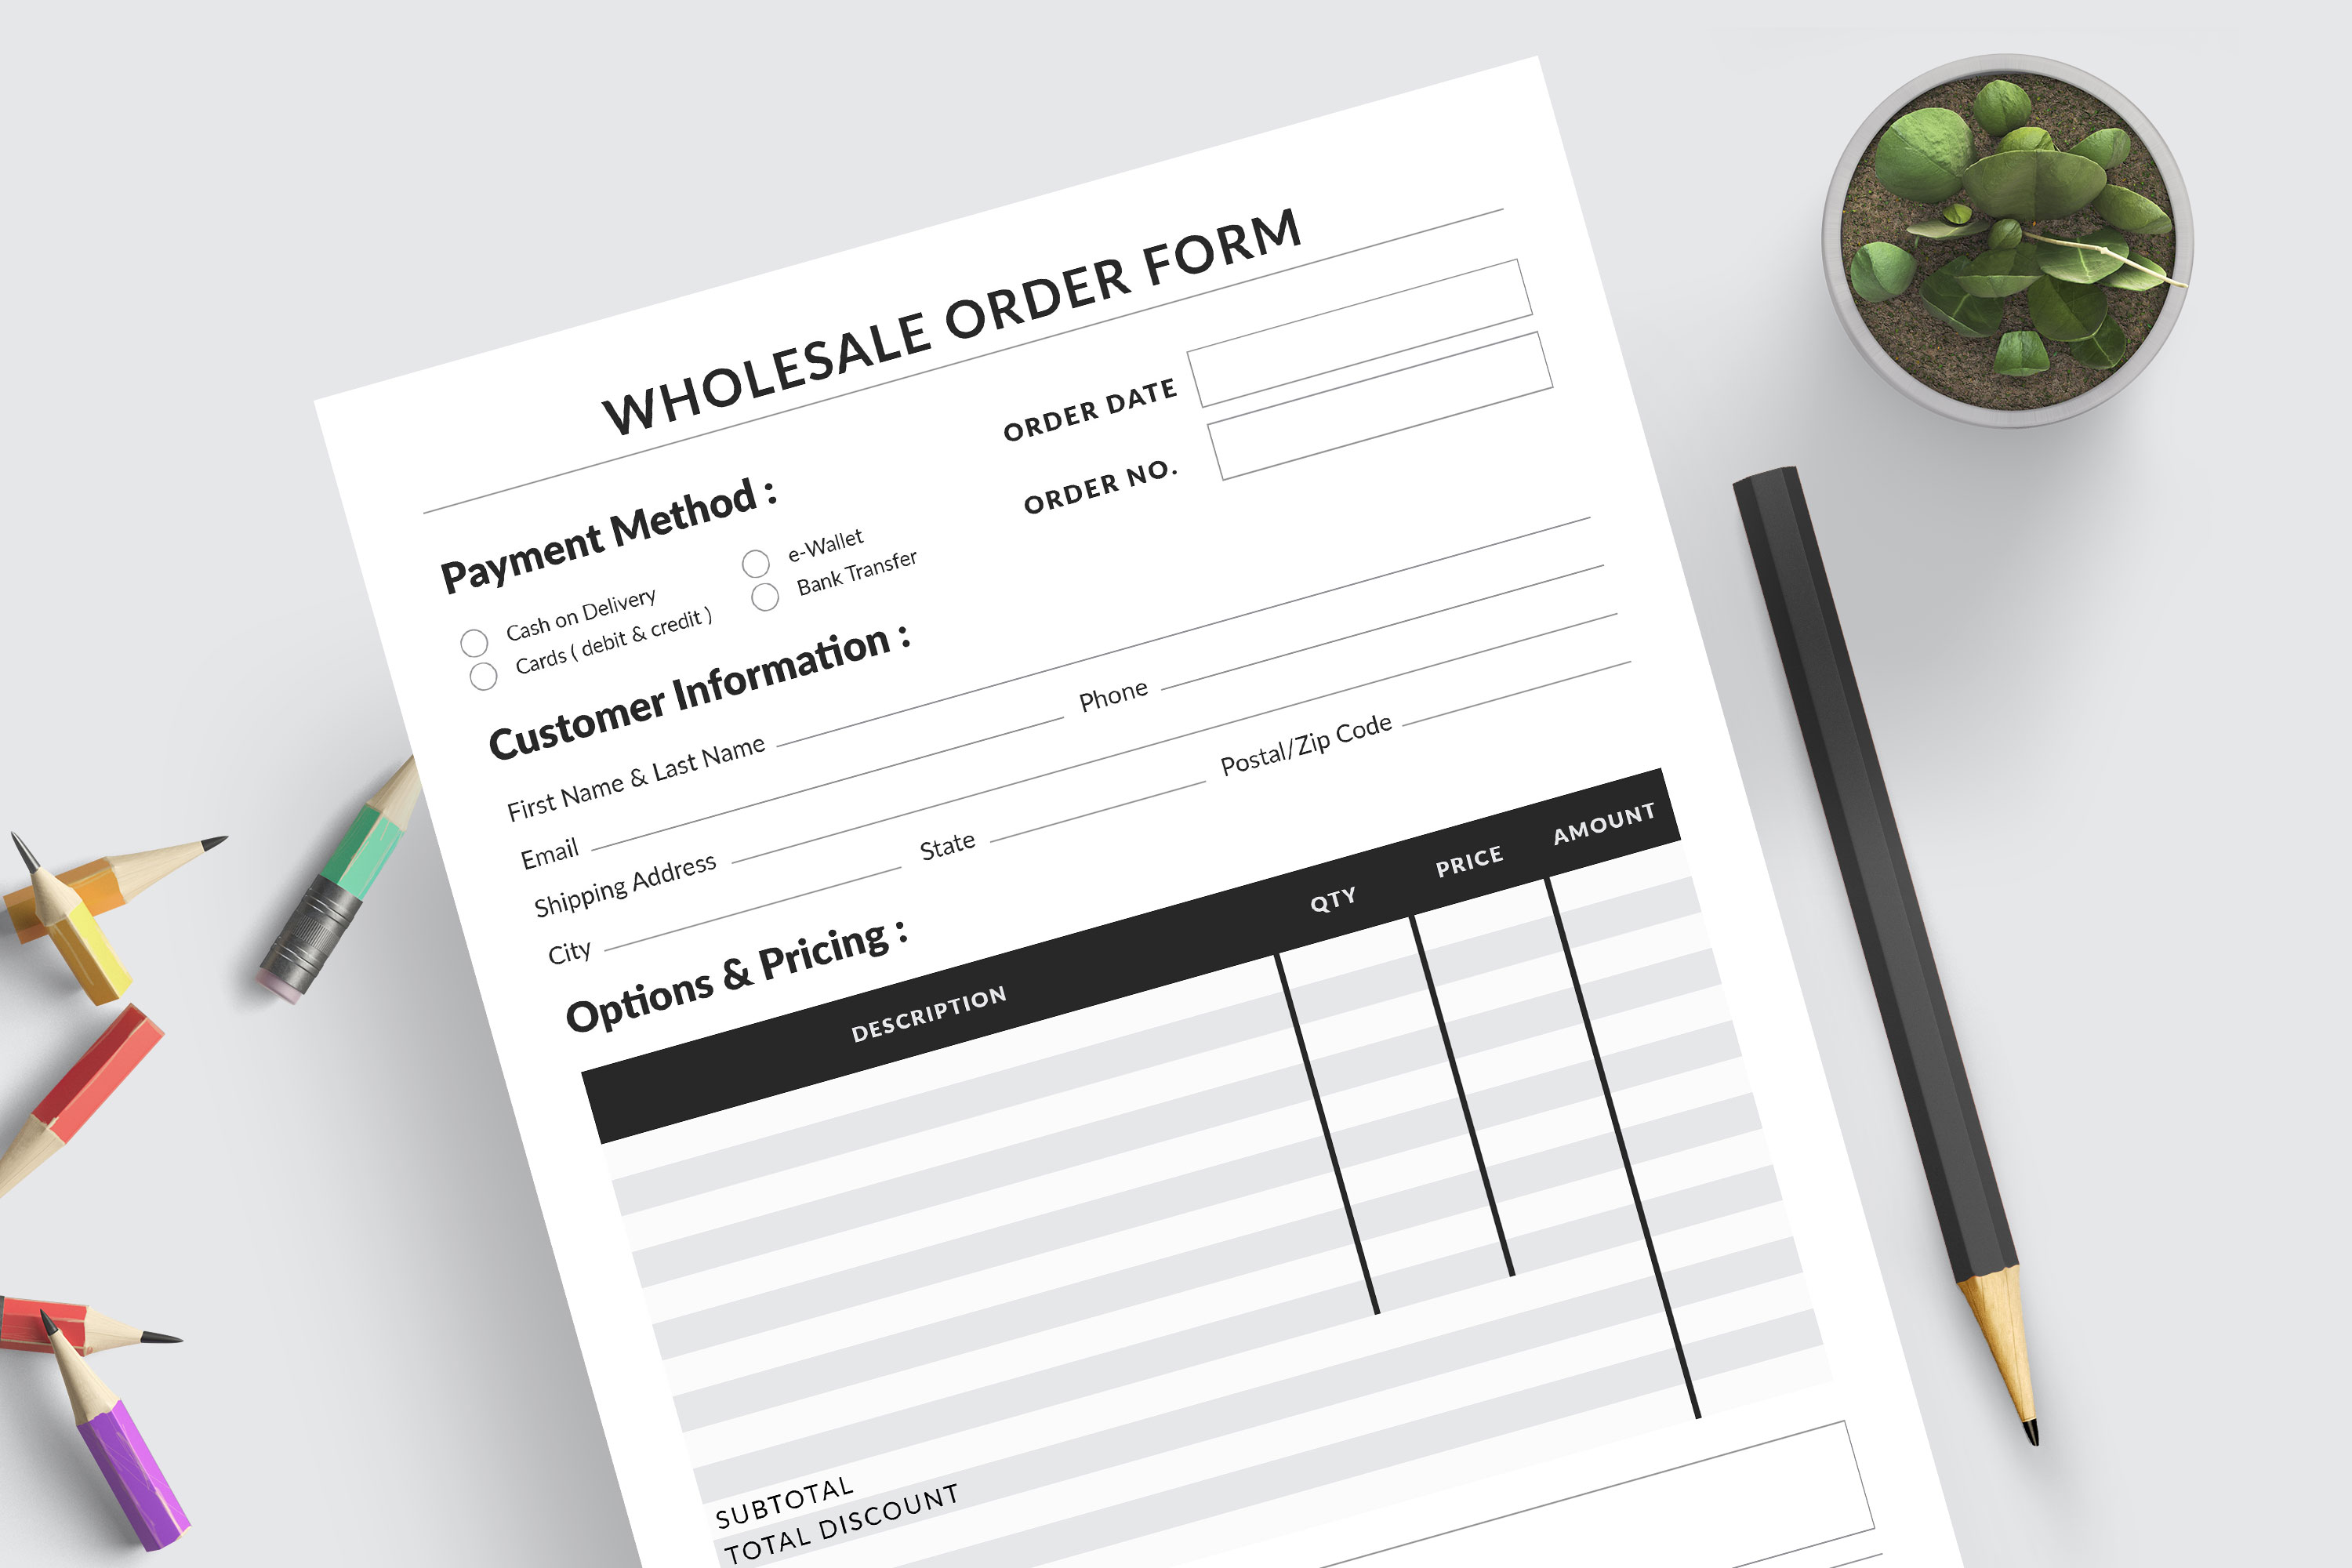 Editable Wholesale Order Form Template example image 4